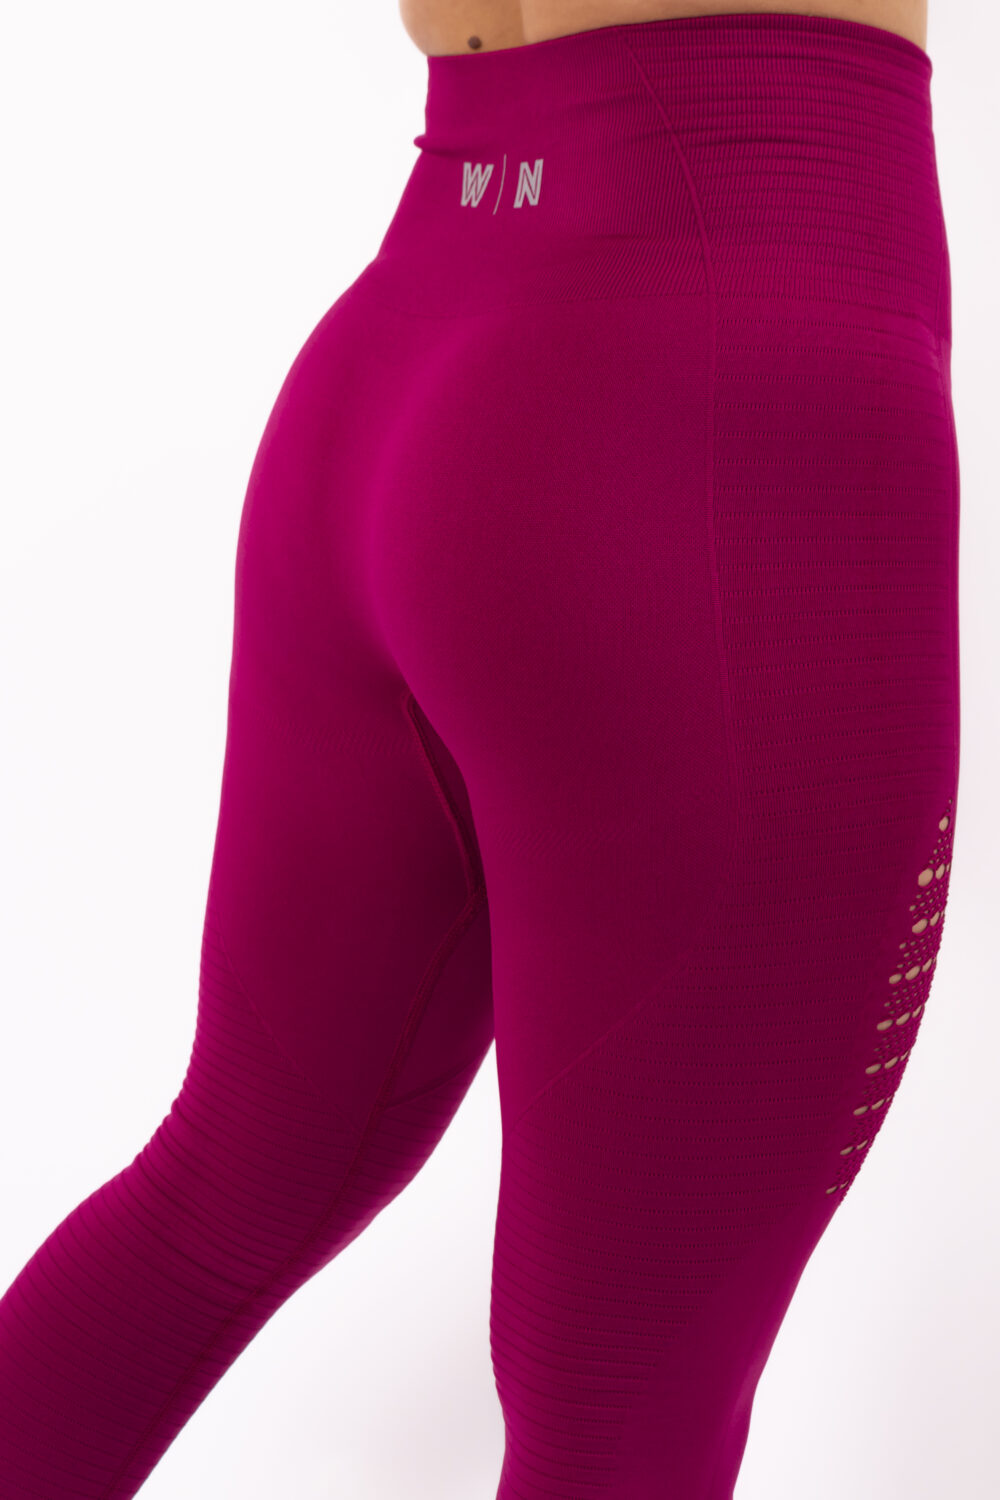 dark fuchsia sportlegging details woman nutrition